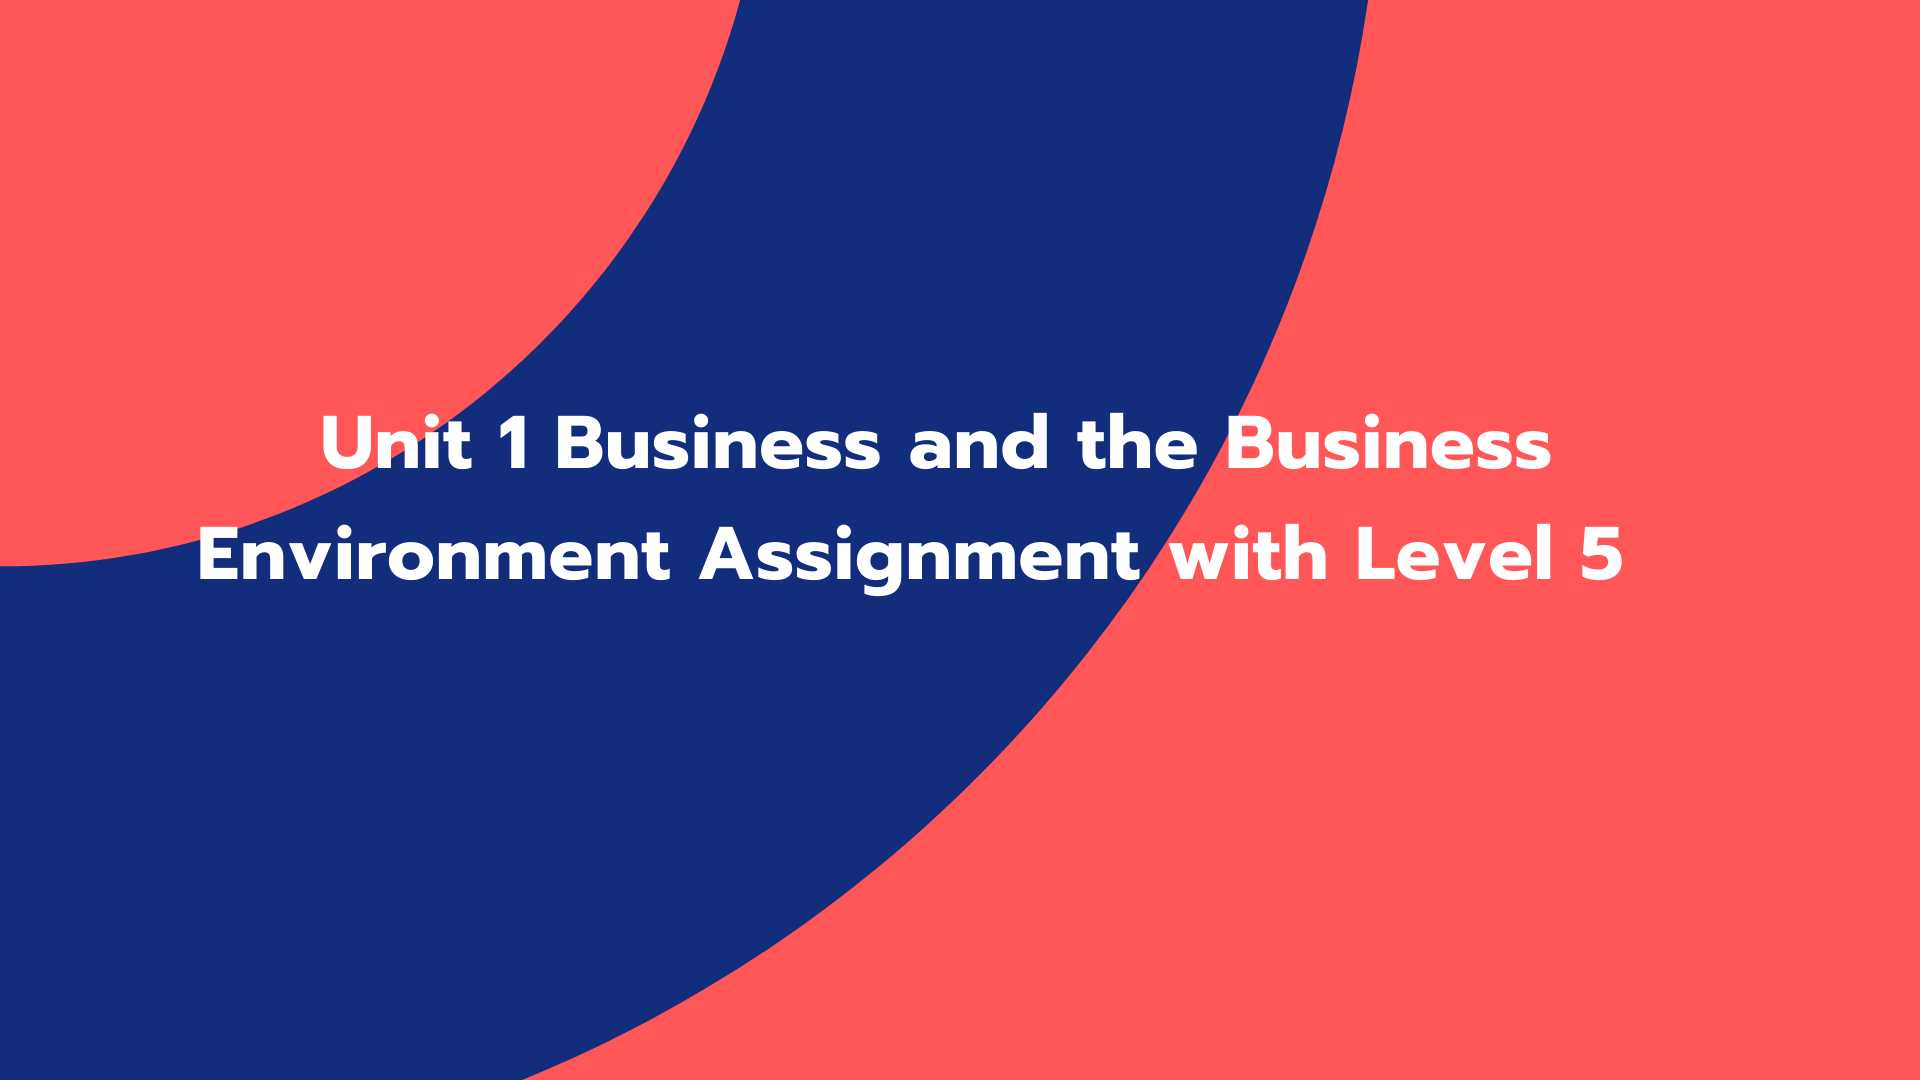 Unit 1 Business and the Business Environment Assignment with Level 5